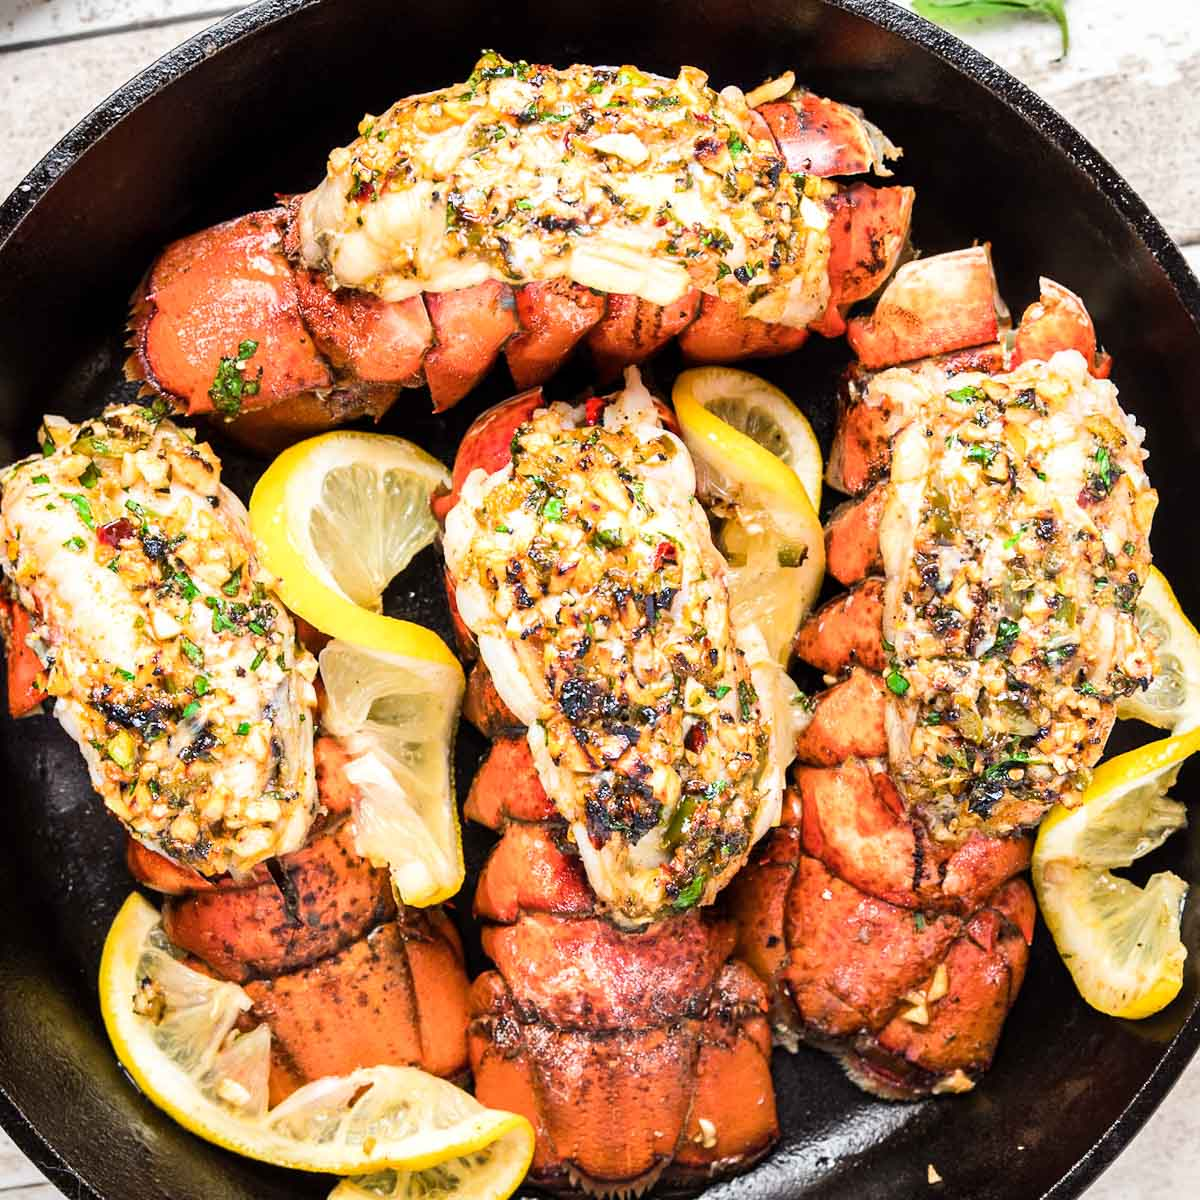 Top down photo of broiled lobster tails in a cast iron skillet